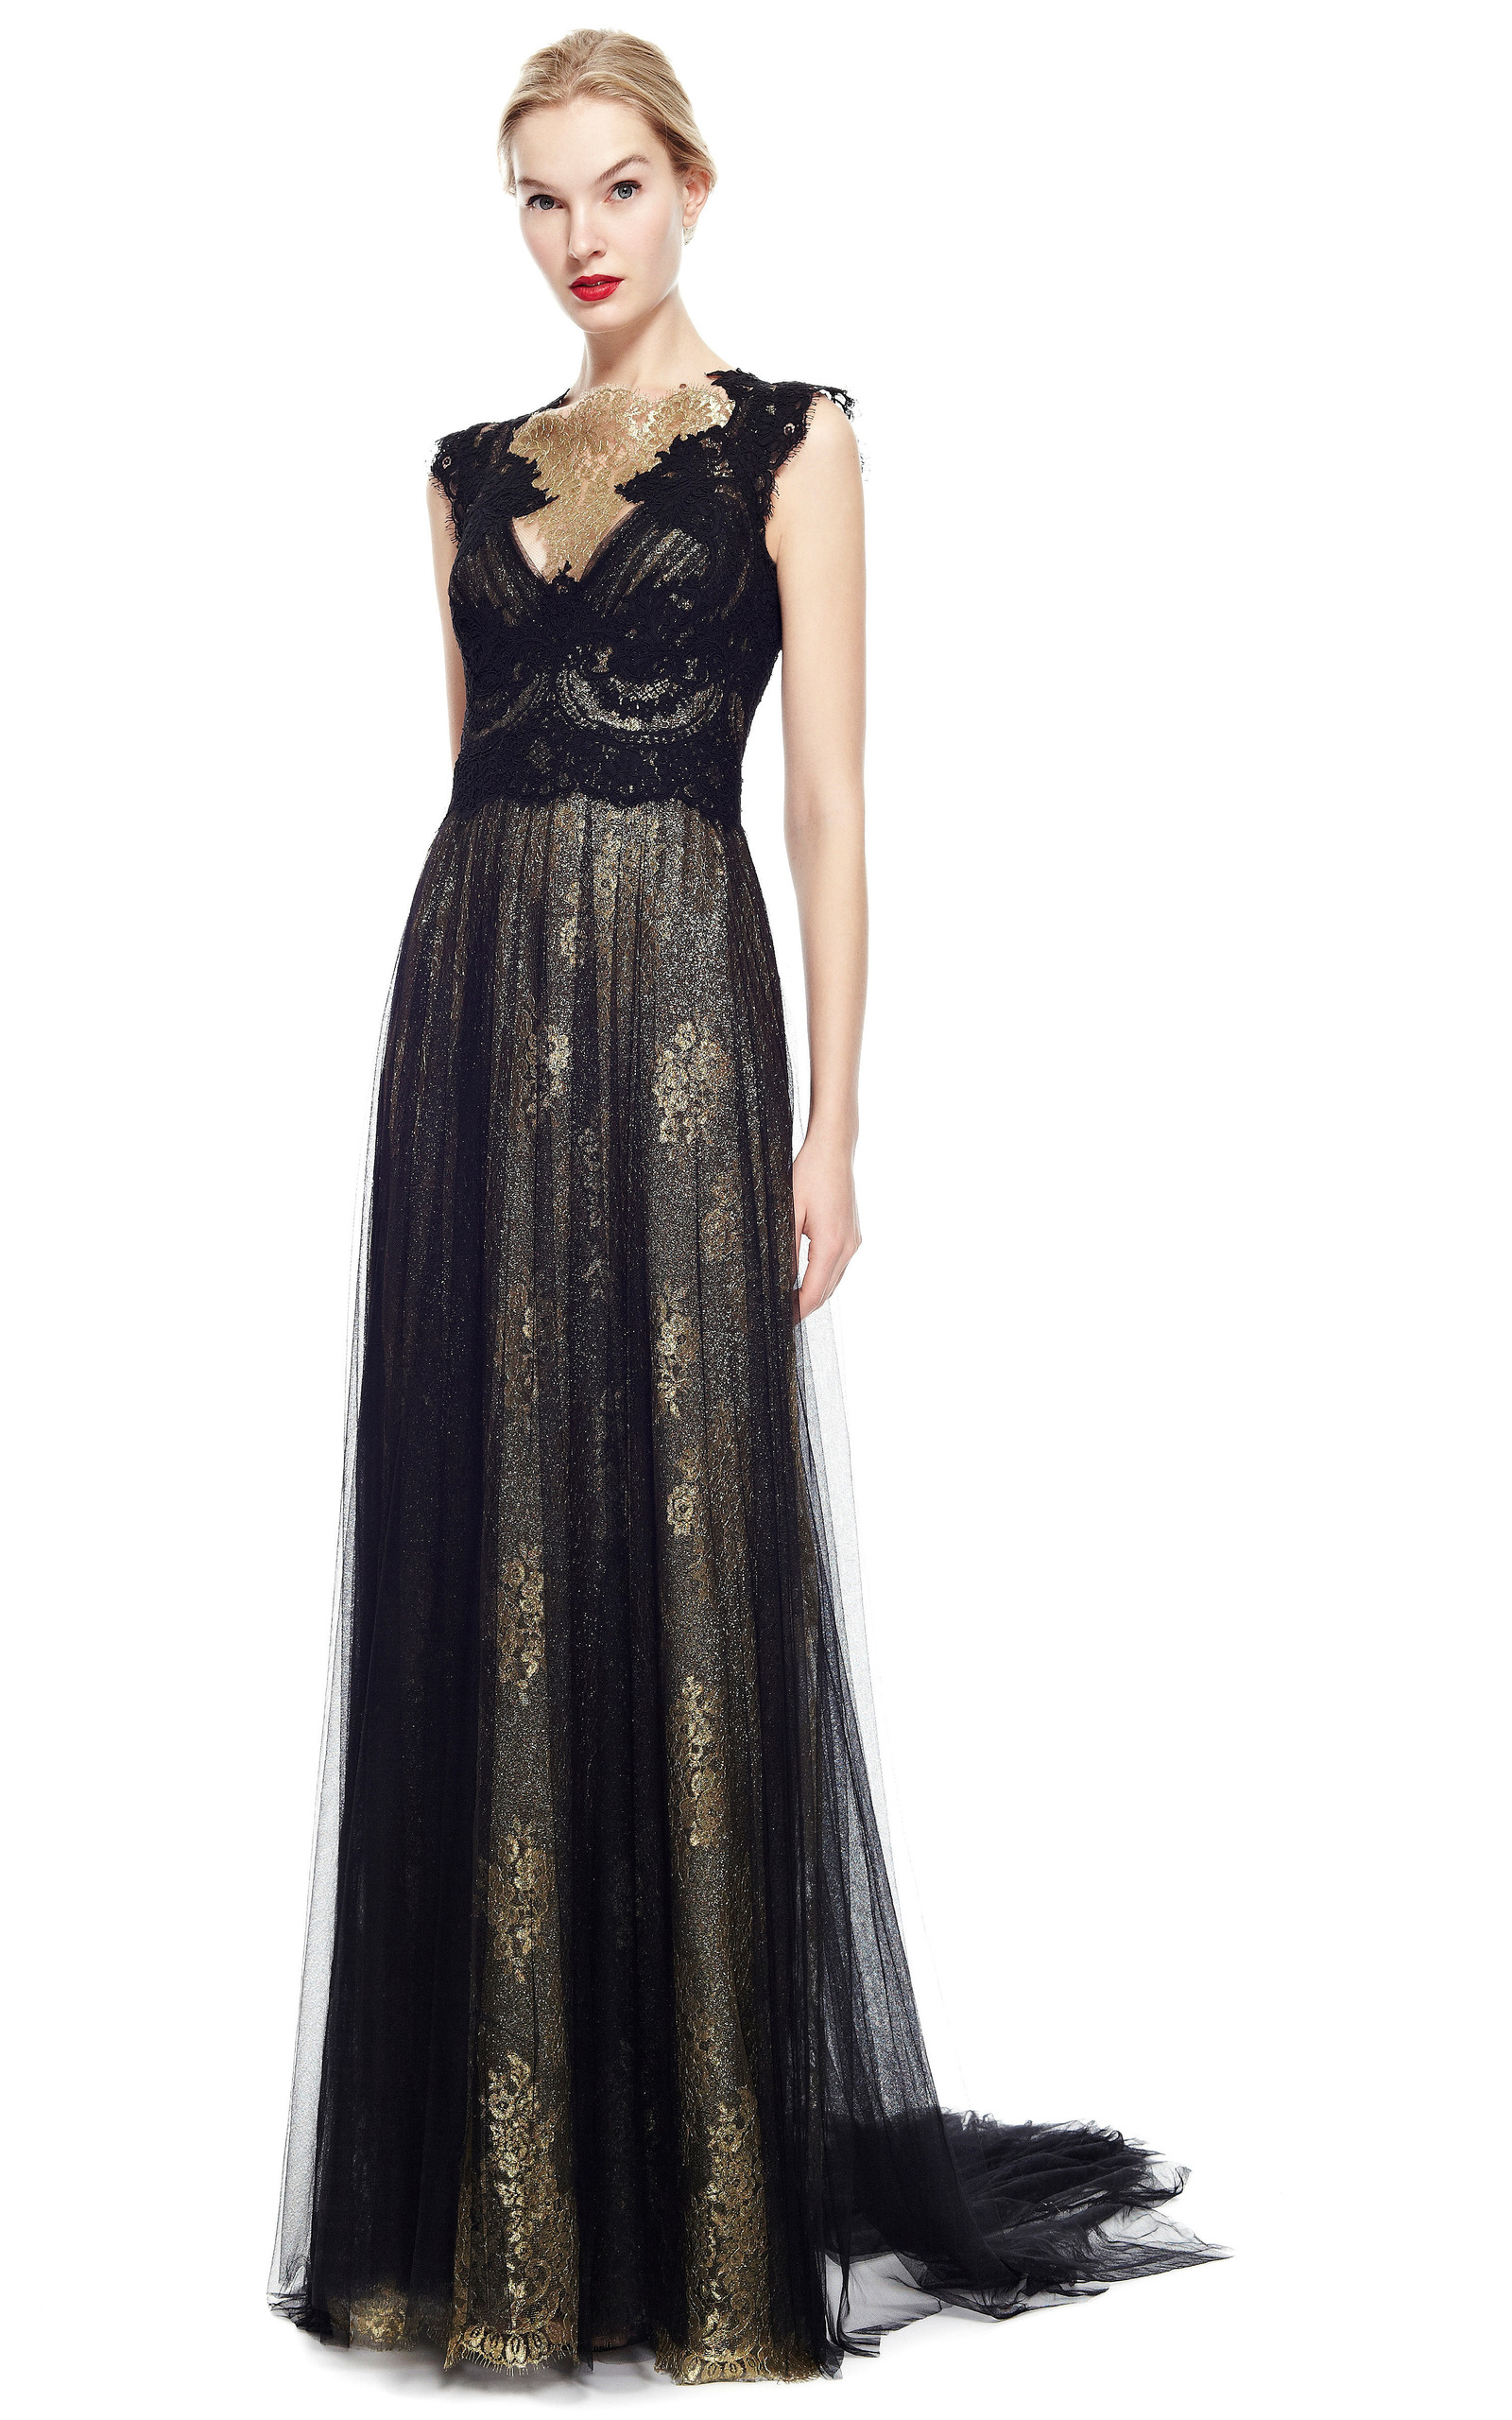 3bdcb89d MarchesaEngineered Metallic Lace Column Gown With Tulle Overlay. CLOSE.  Loading. Loading